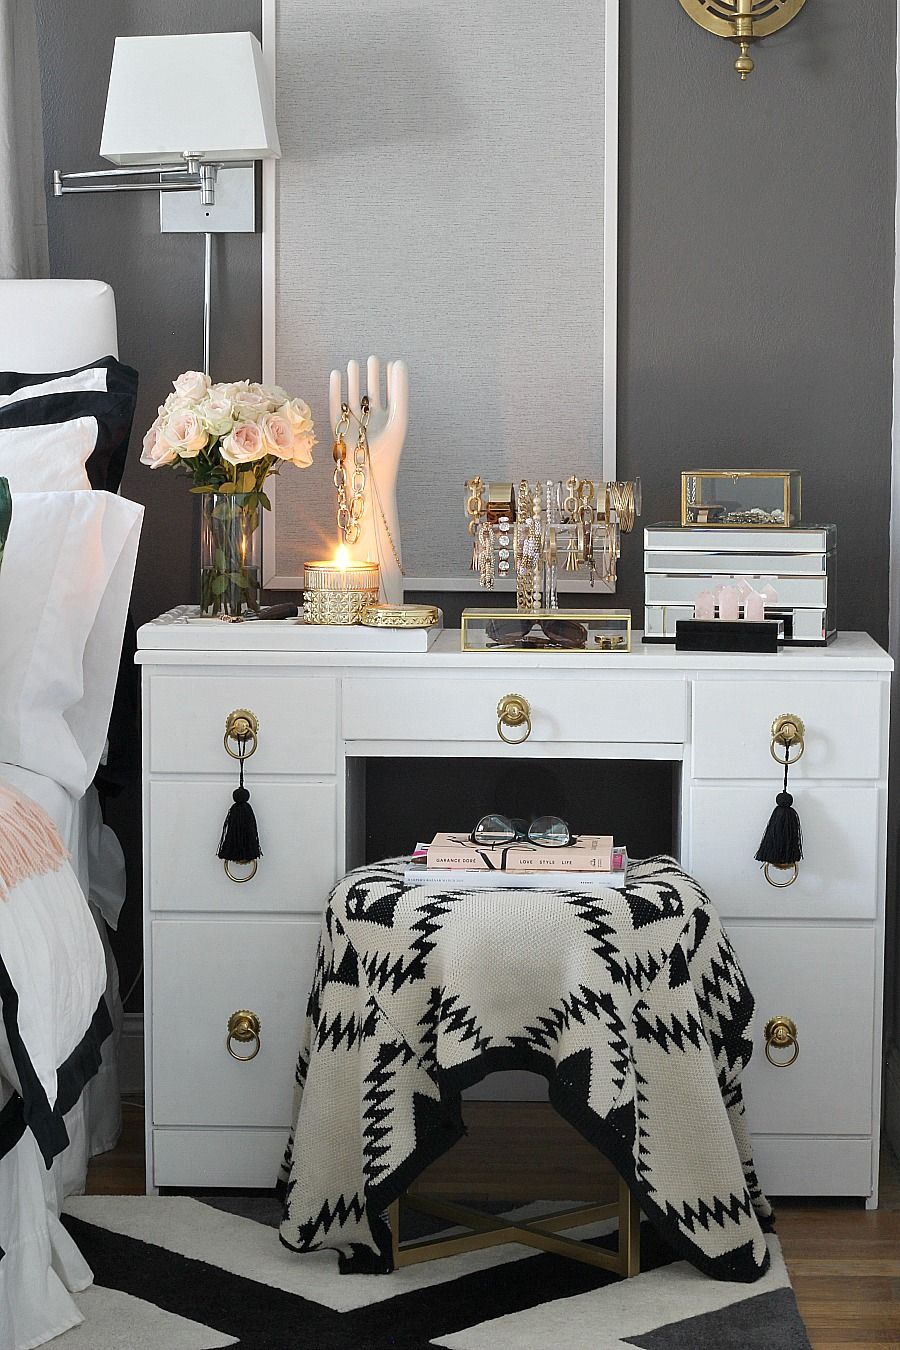 Beautiful jewelry storage via bliss at home inspiring blogger